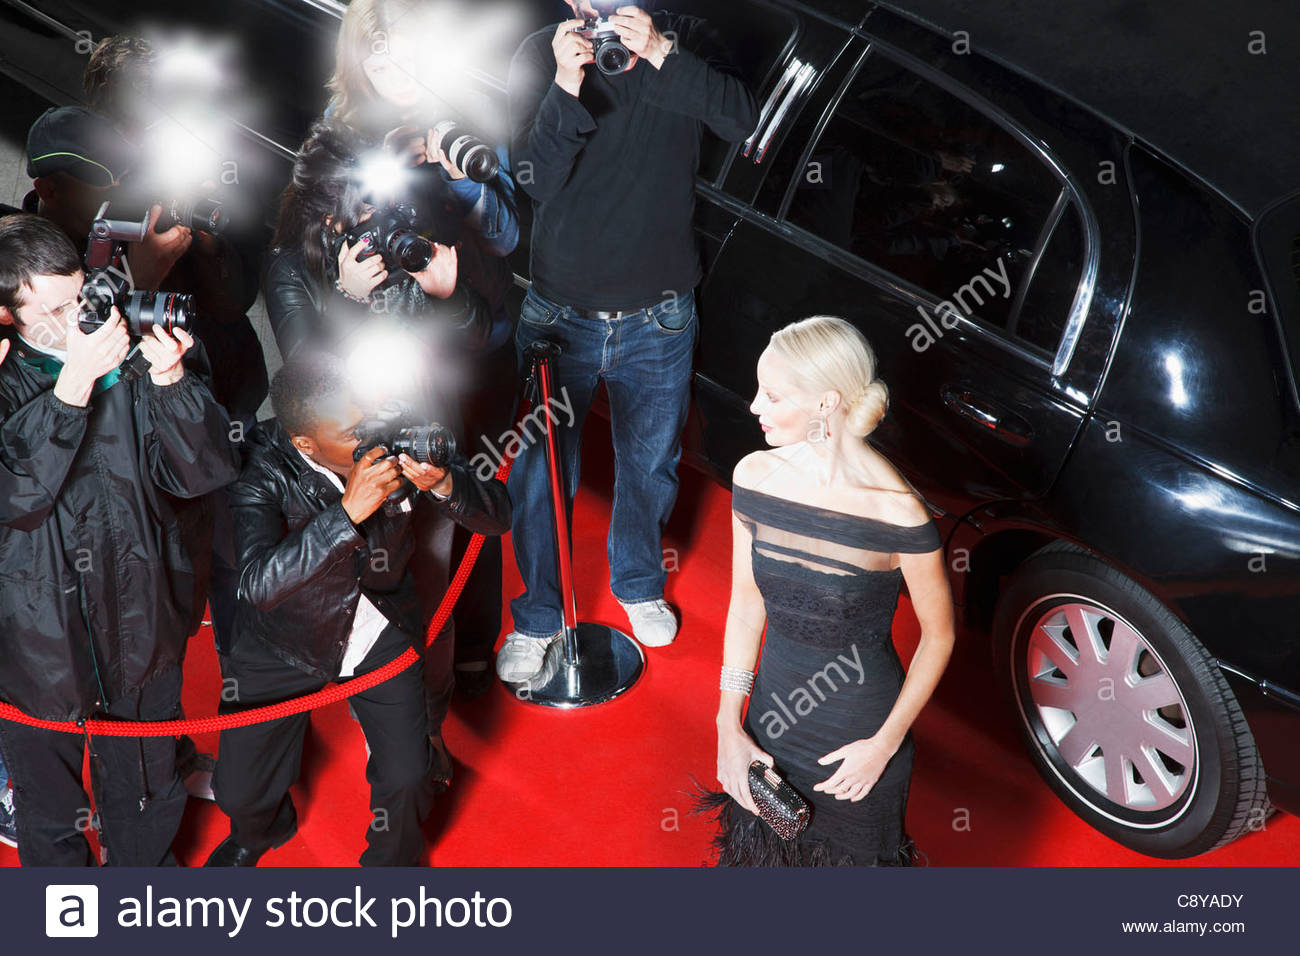 Celebrity posing for paparazzi on red carpet - Stock Image